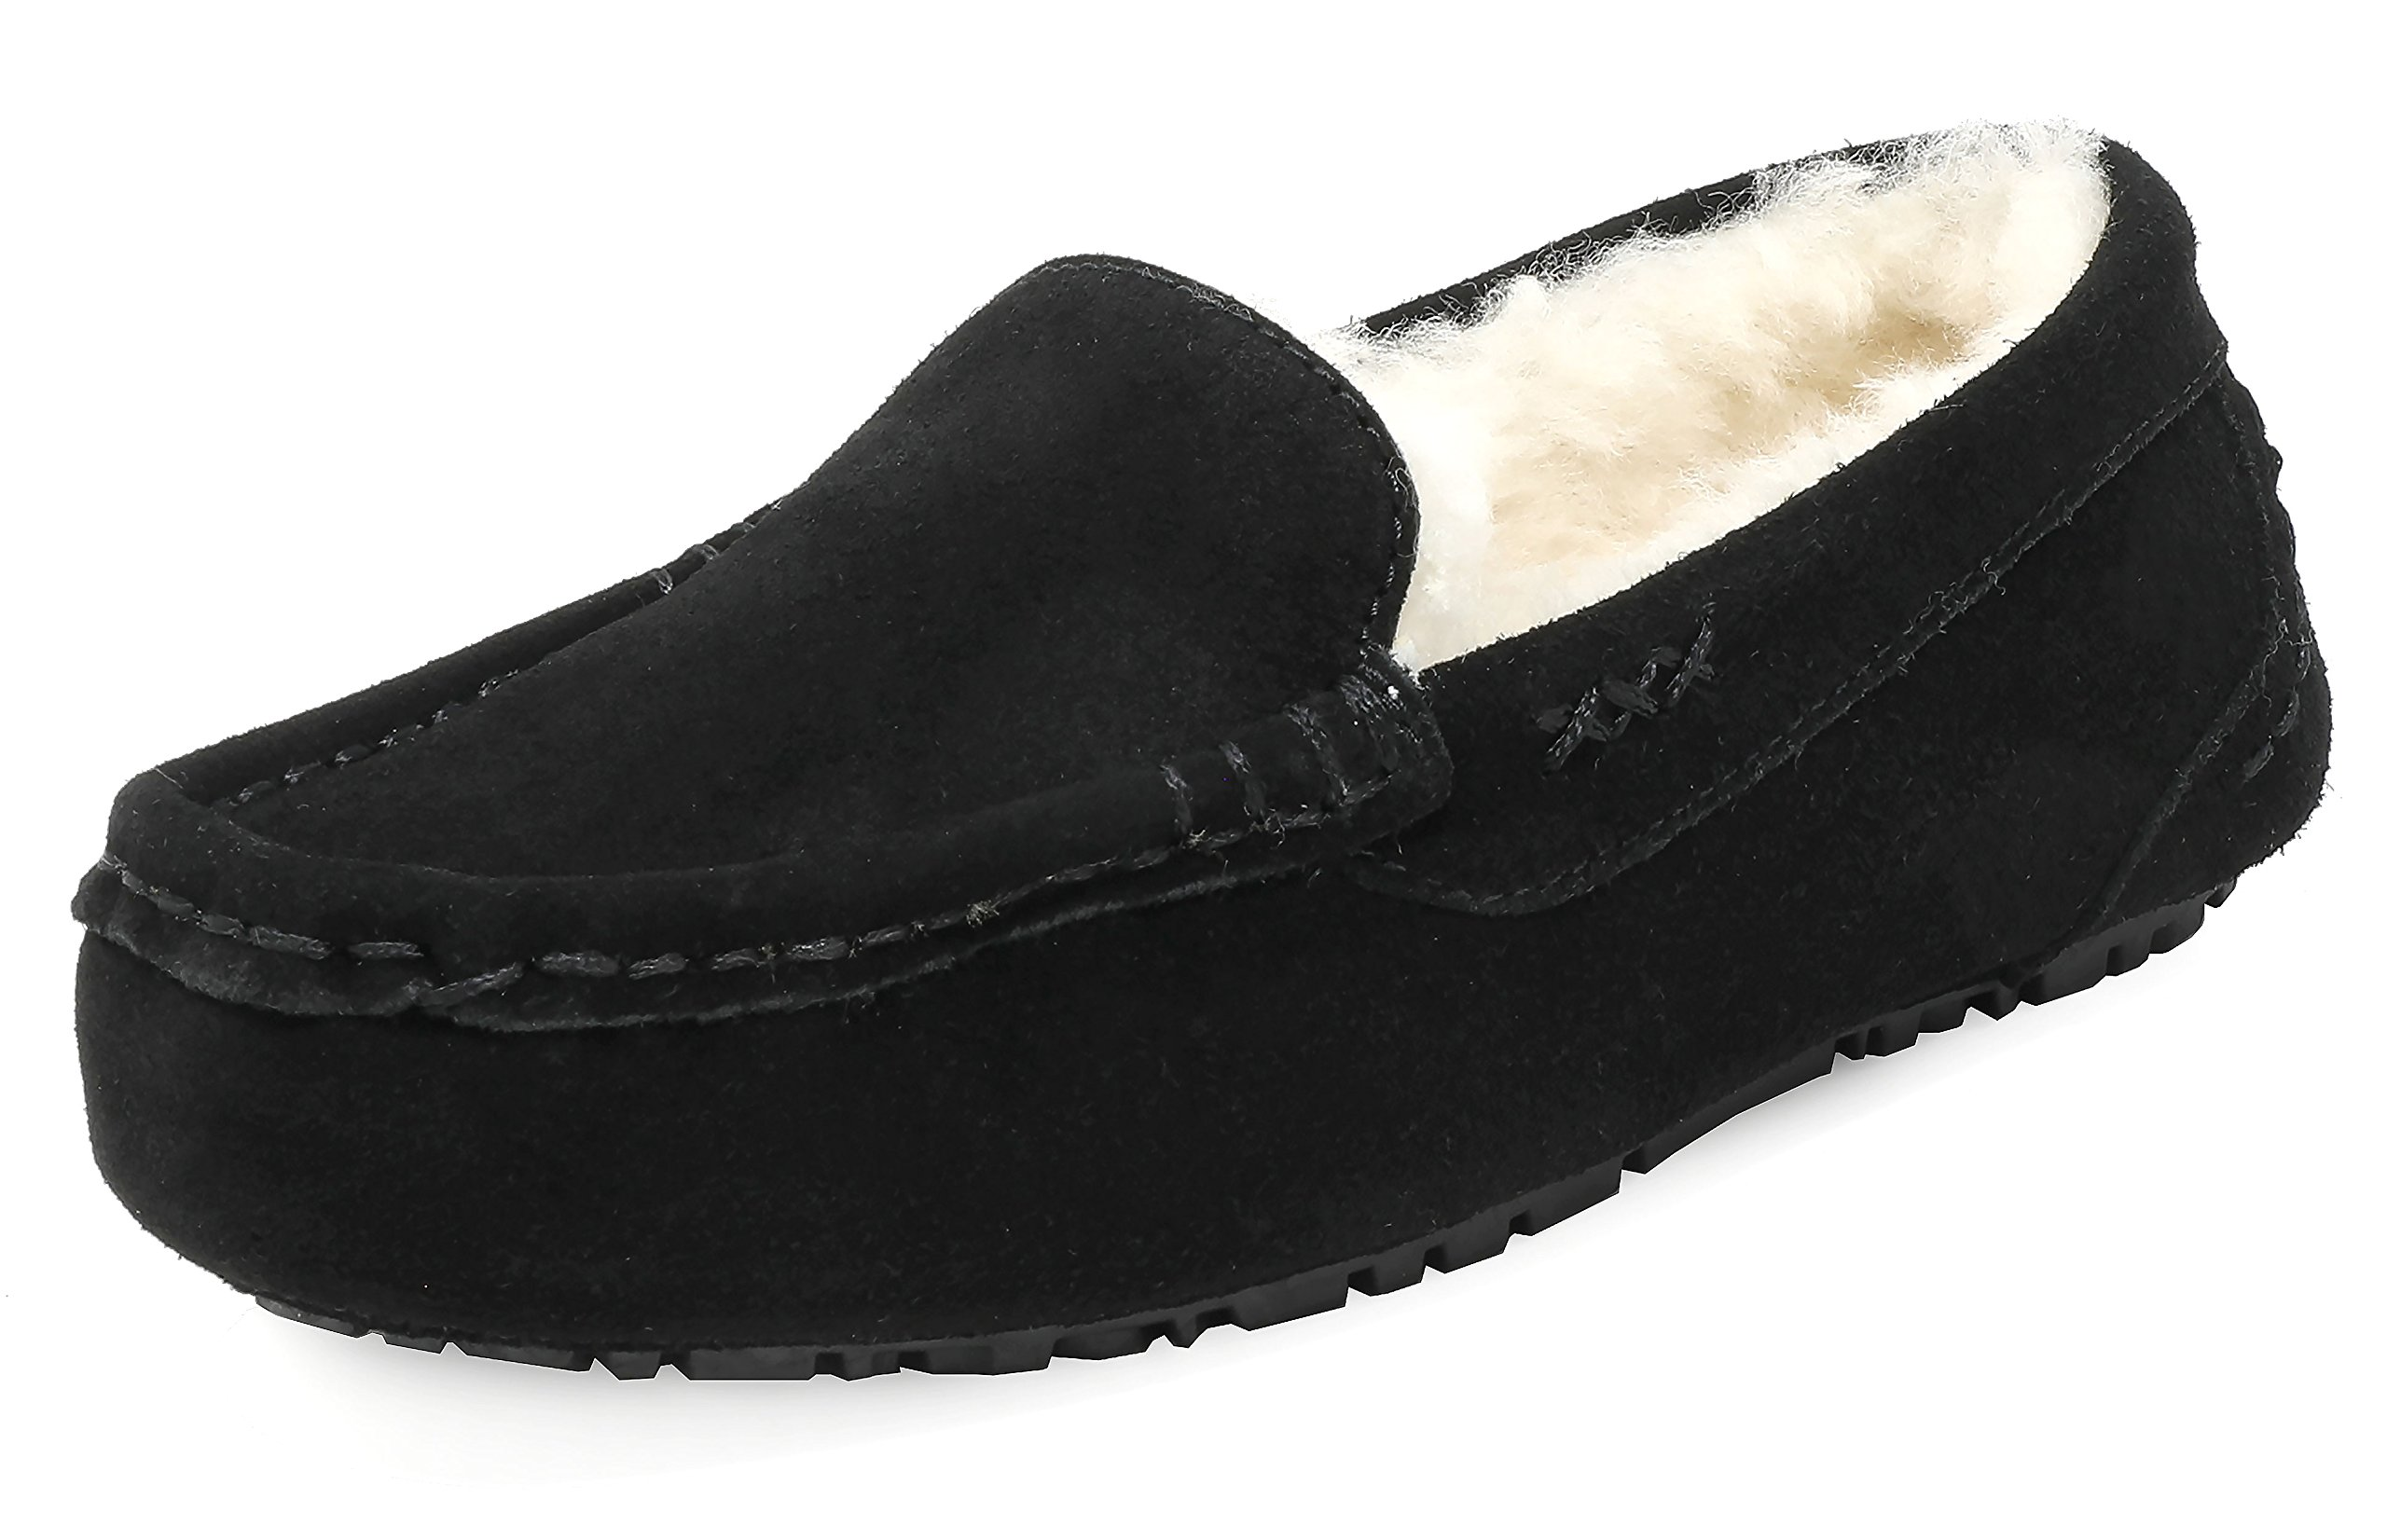 DREAM PAIRS Women's Auzy-01 Black Faux Fur Slippers Loafers Shoes Size 7.5-8 B(M) US